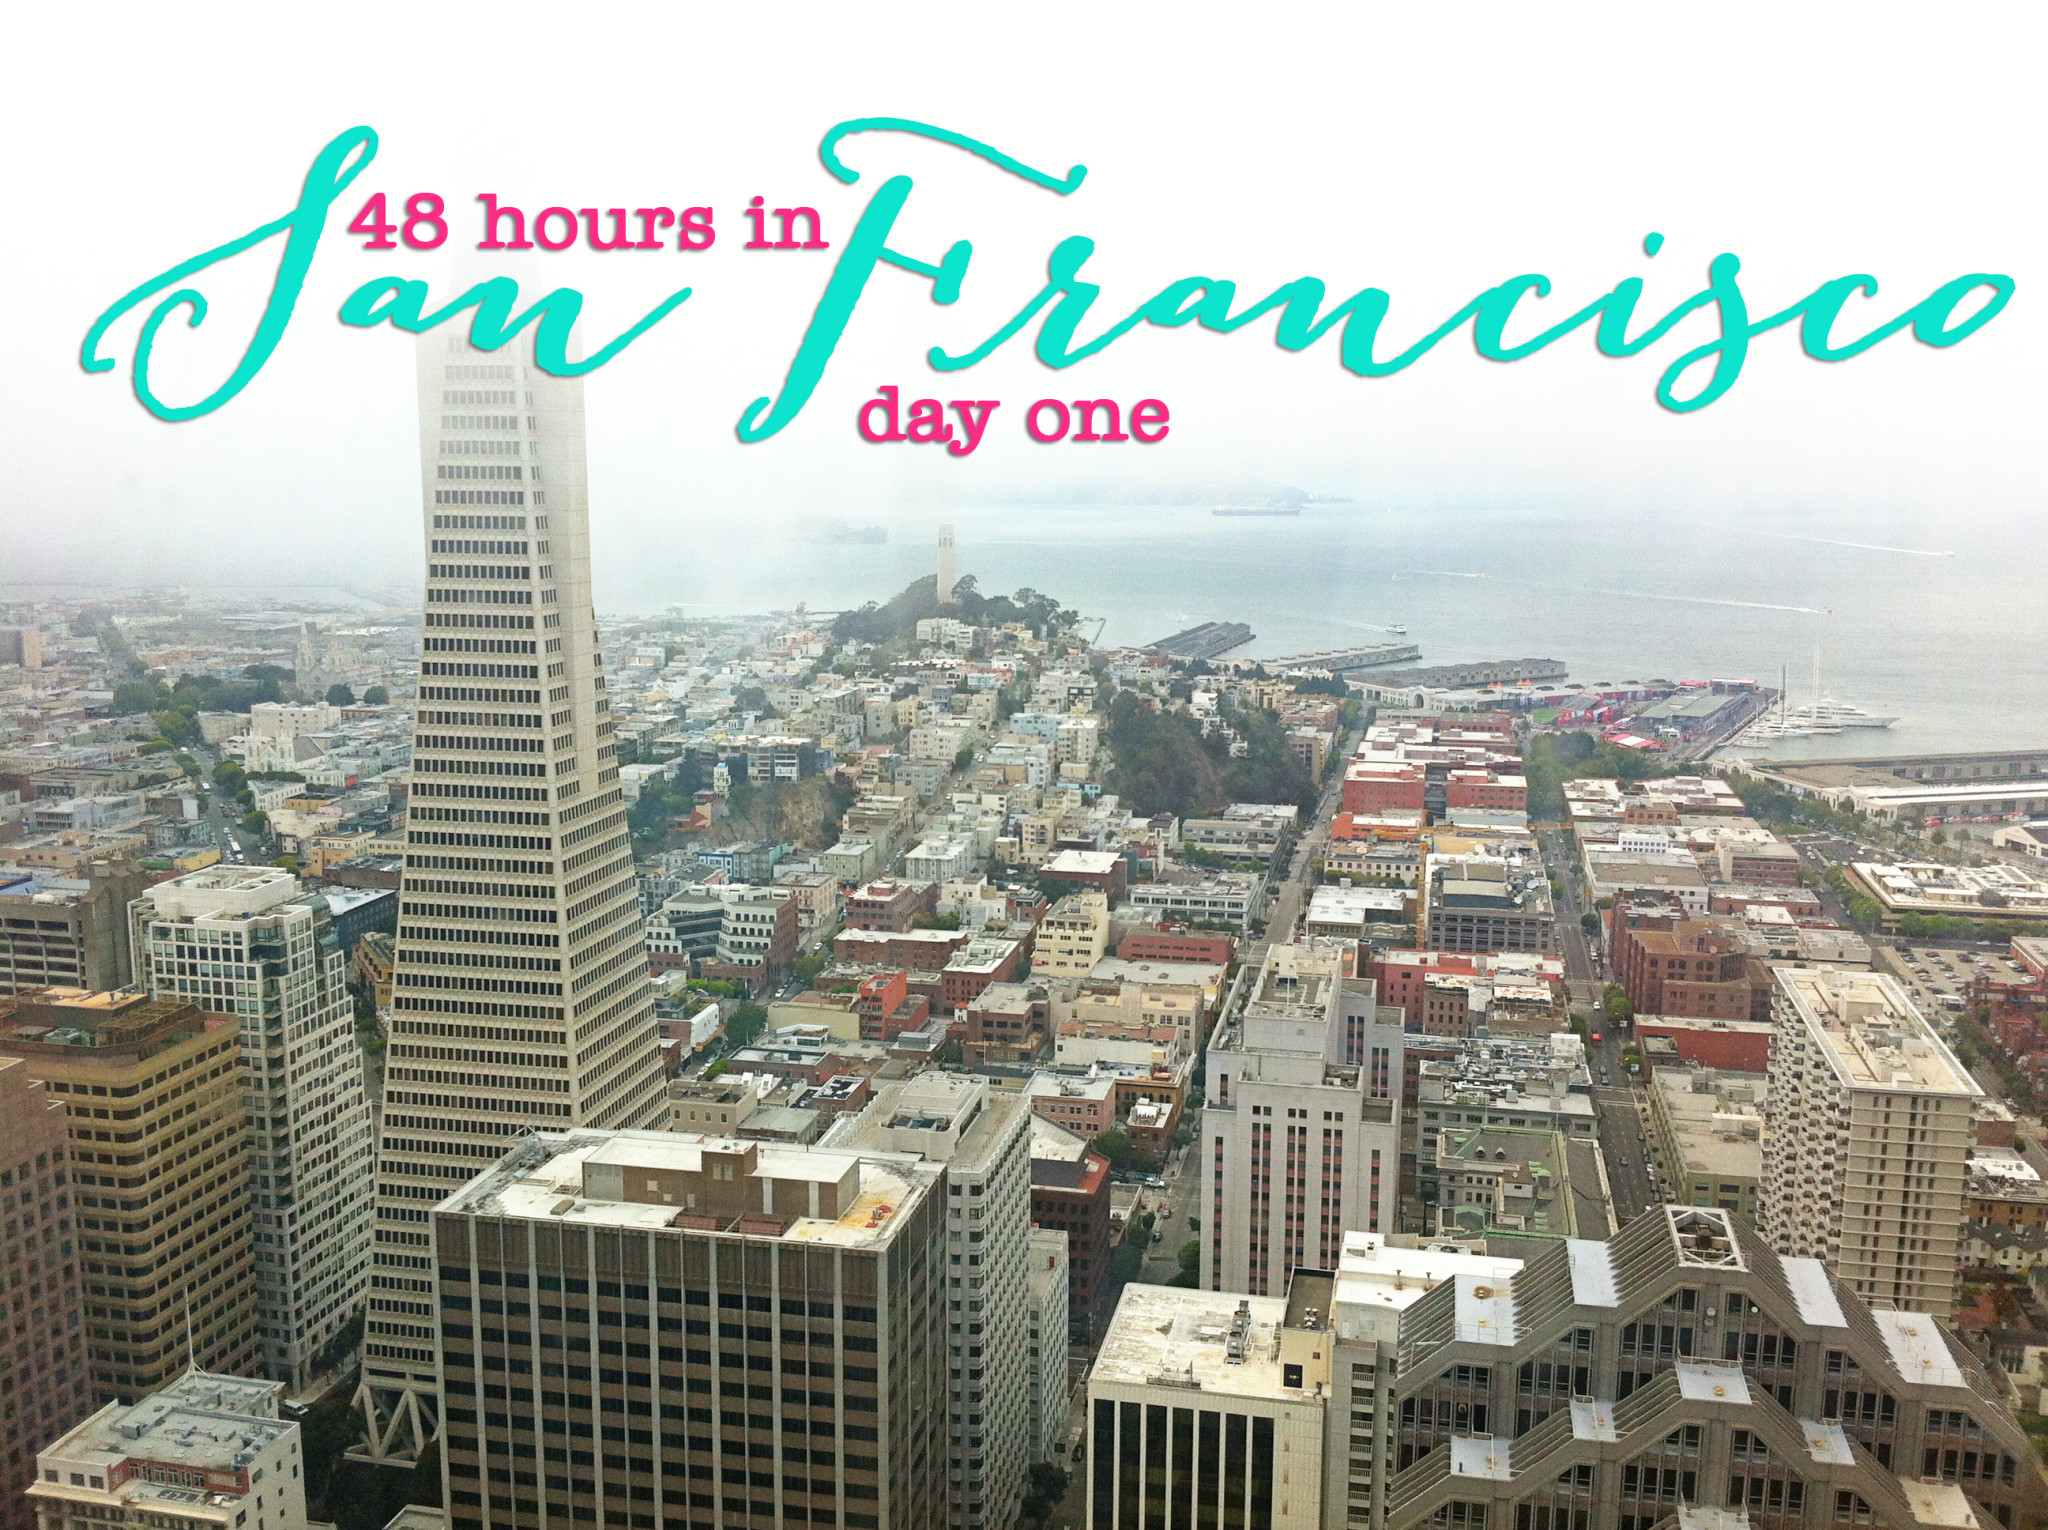 San Francisco- 48 Hours in the City by the Bay (without a car): Things to do in San Francisco Day One